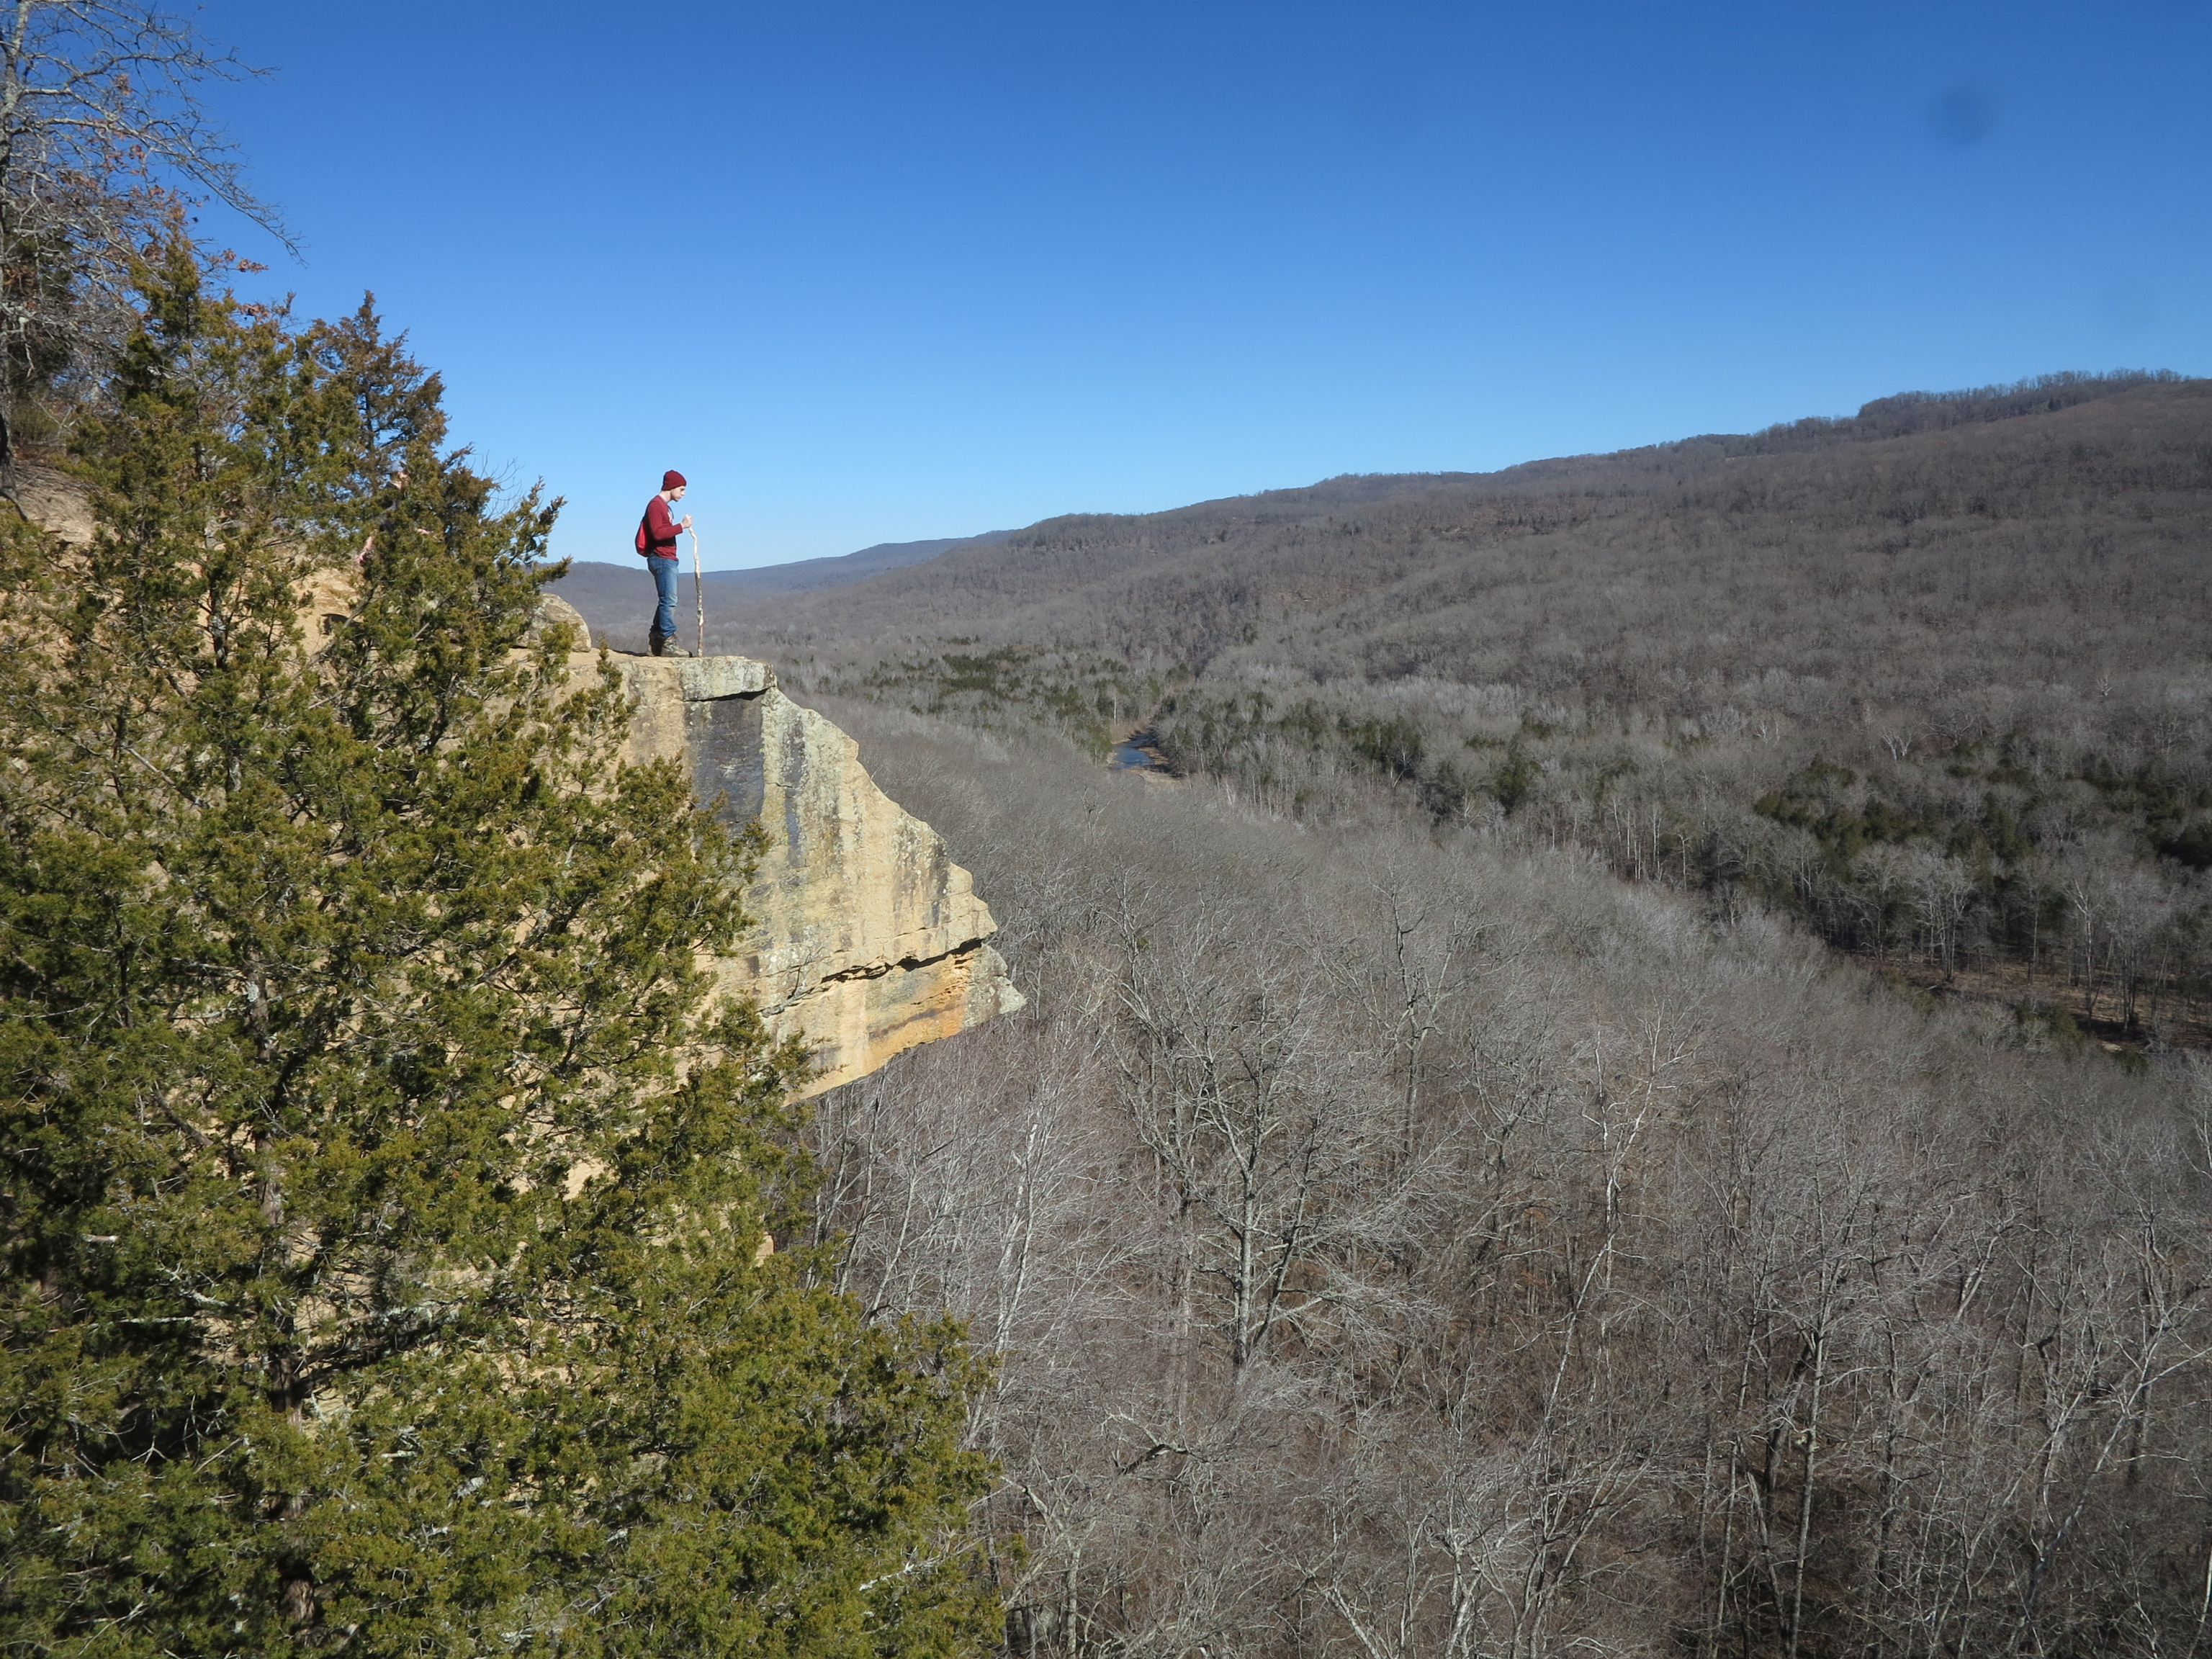 Five-Star Trails: The Ozarks, Arkansas hiking, Missouri hiking, Jim Warnock, Devil's Den, Hiker-dog, hiking in the Ozarks